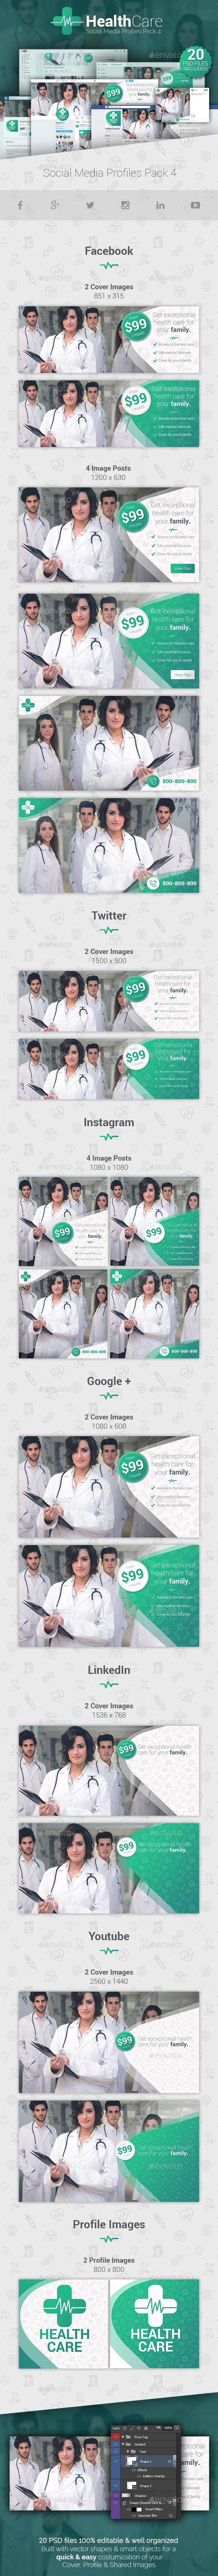 GraphicRiver HealthCare Social Media Cover Profile Pack 4 20975694